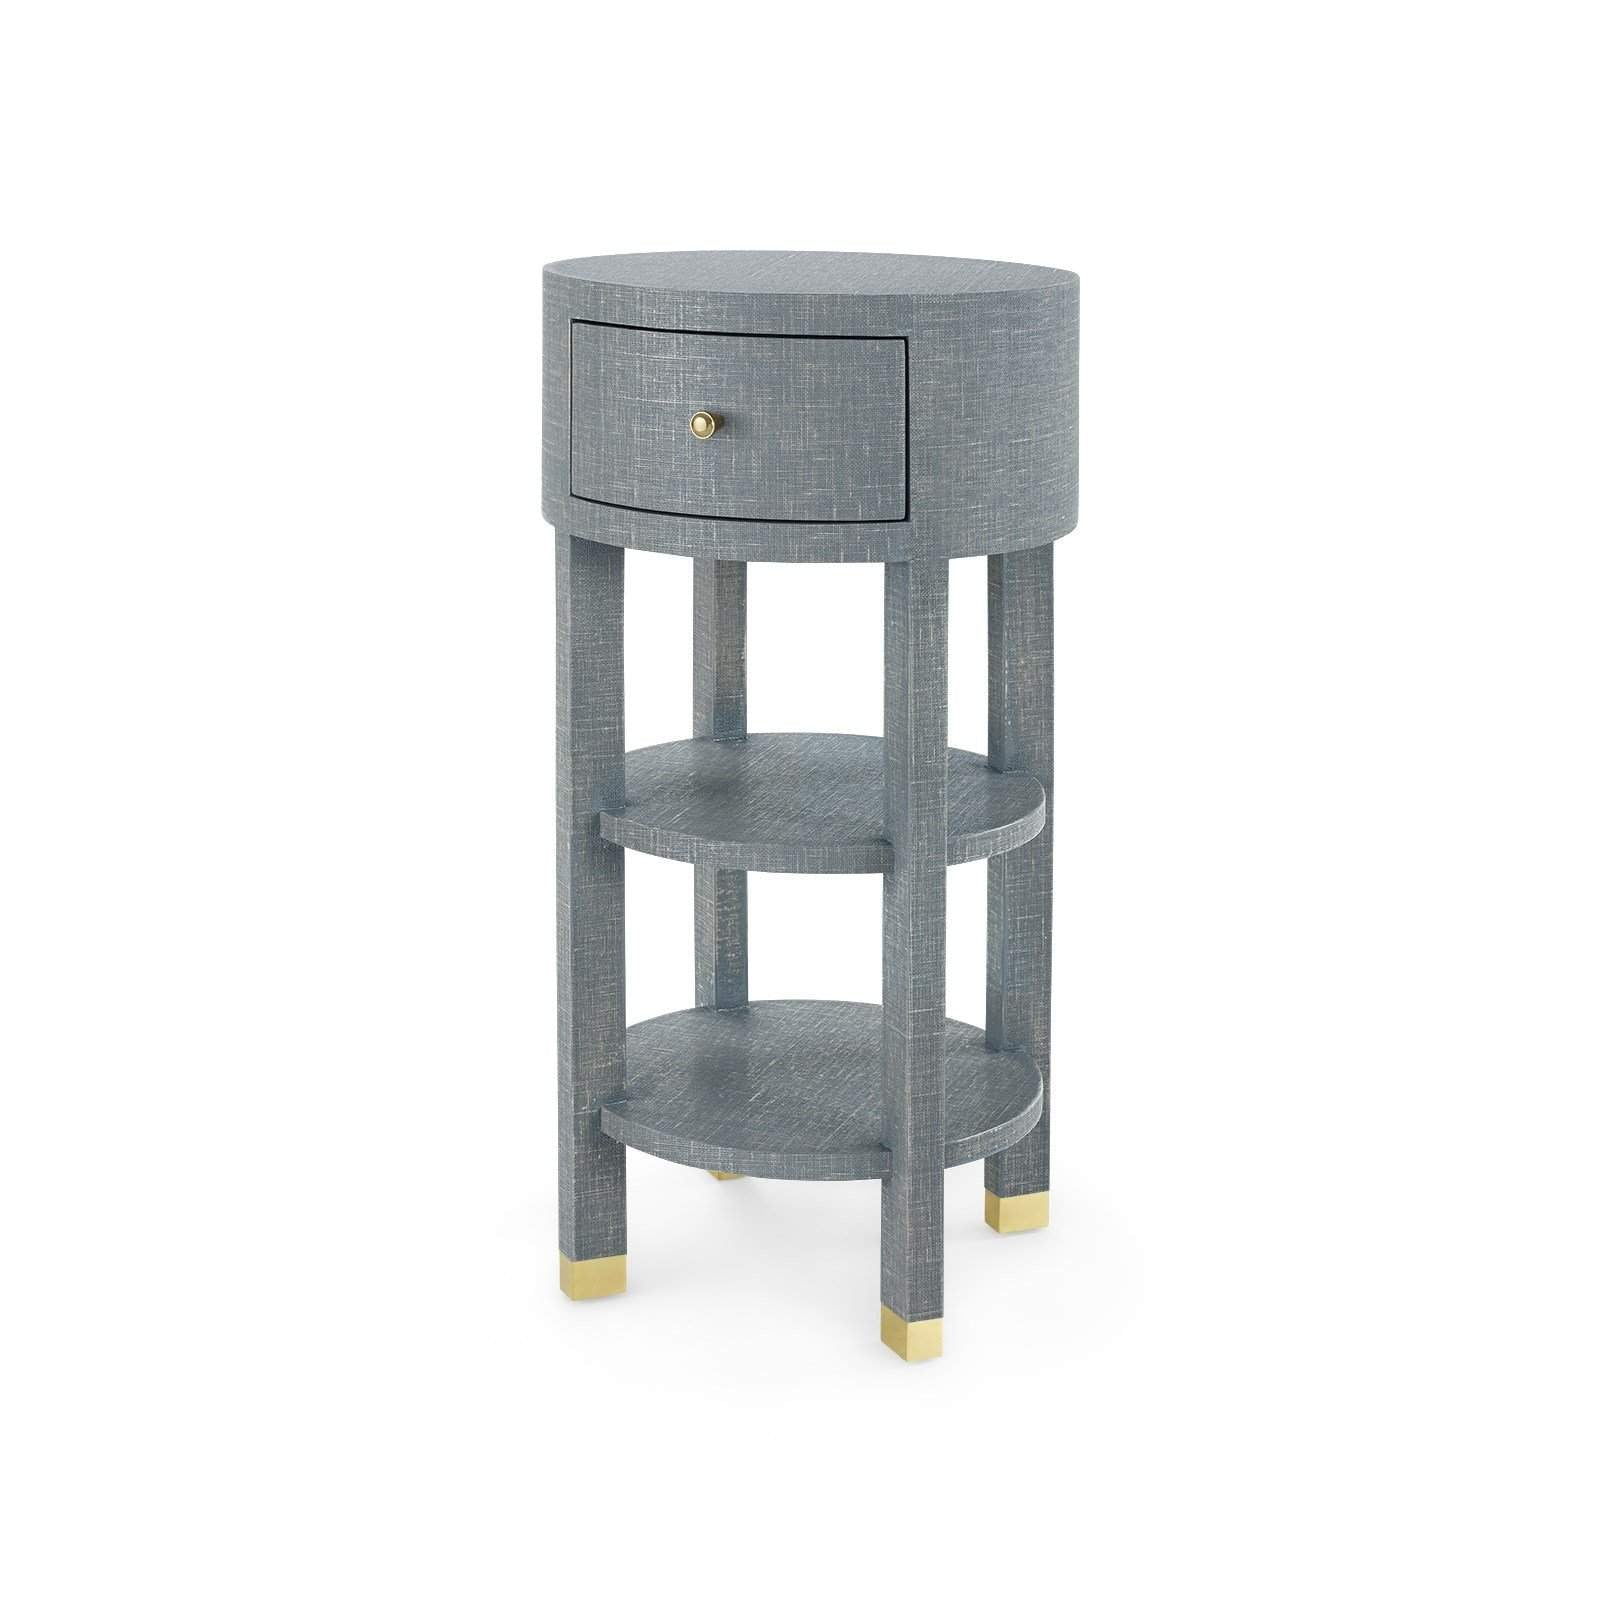 Bungalow 5 CLAUDETTE 1 DRAWER ROUND SIDE TABLE in GRAY